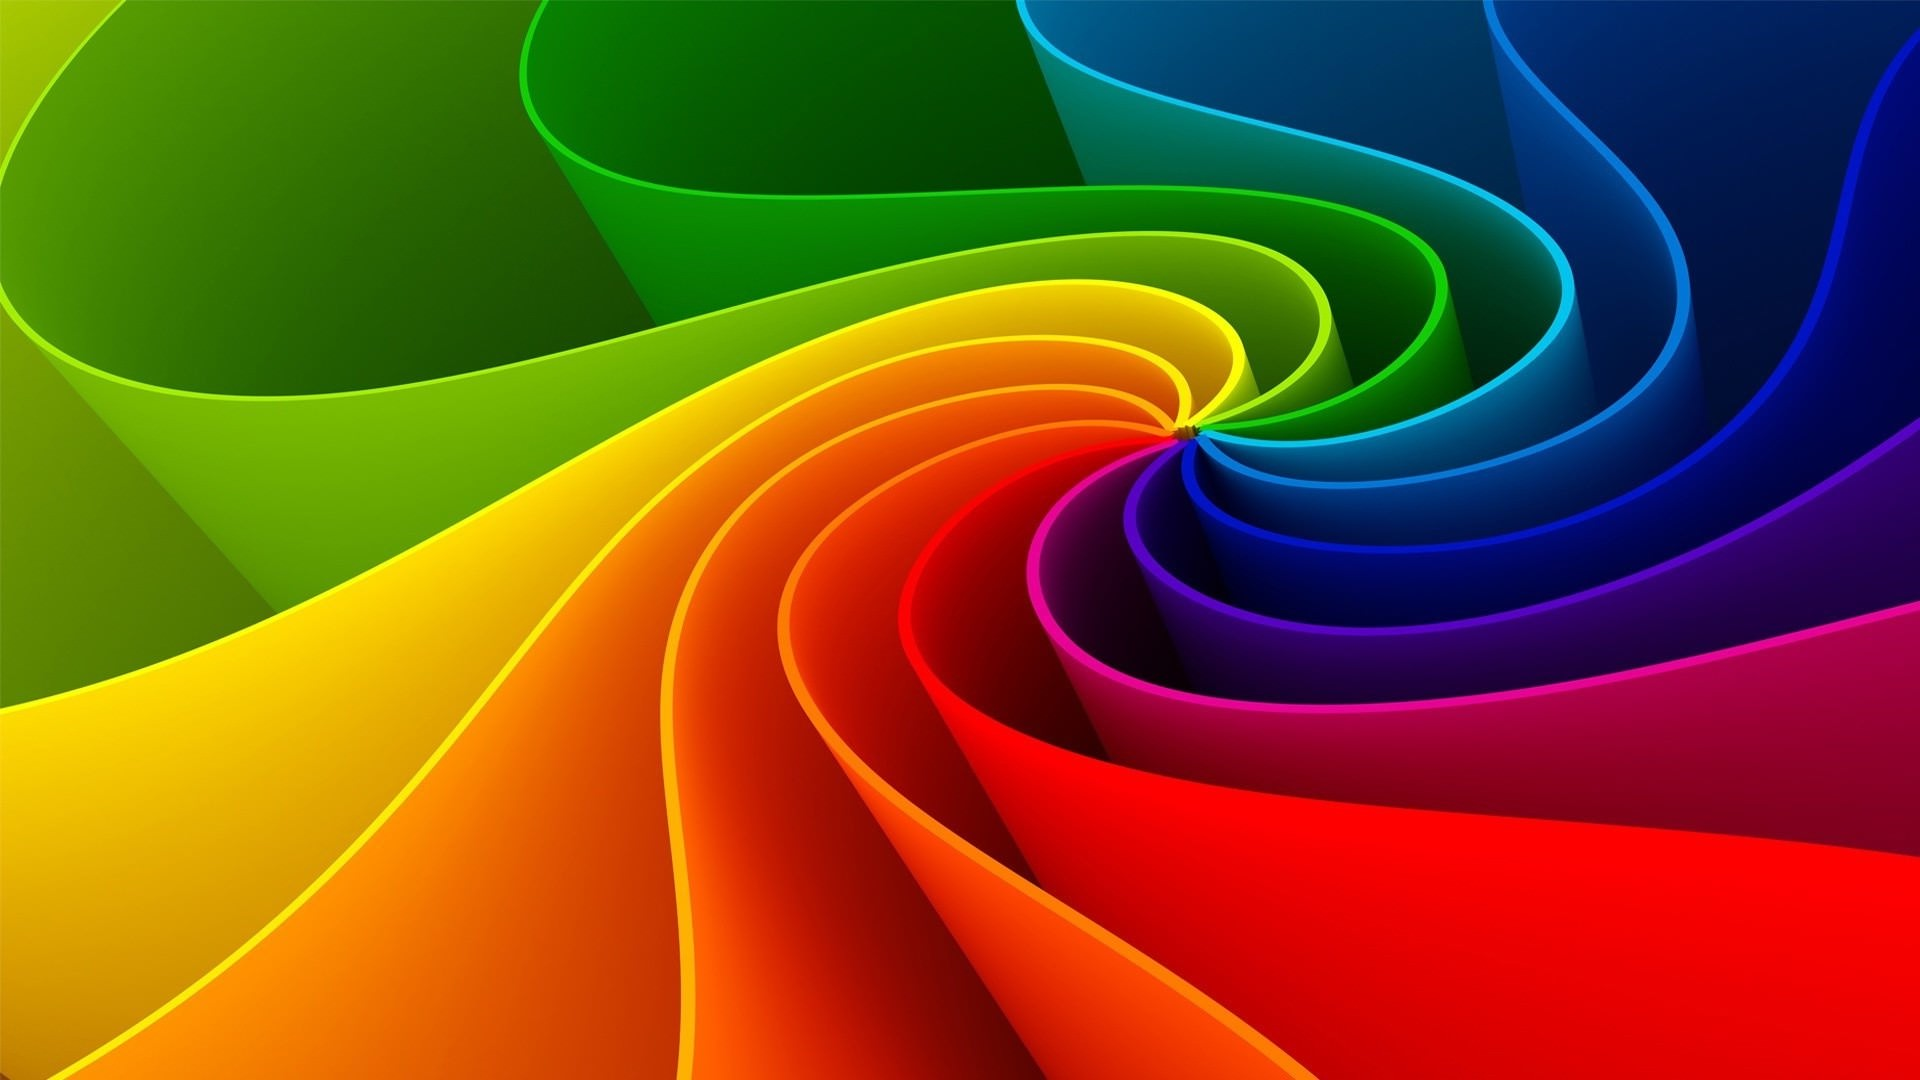 Free 3d Scenic Wallpaper 20 Hd Rainbow Background Images And Wallpapers Free